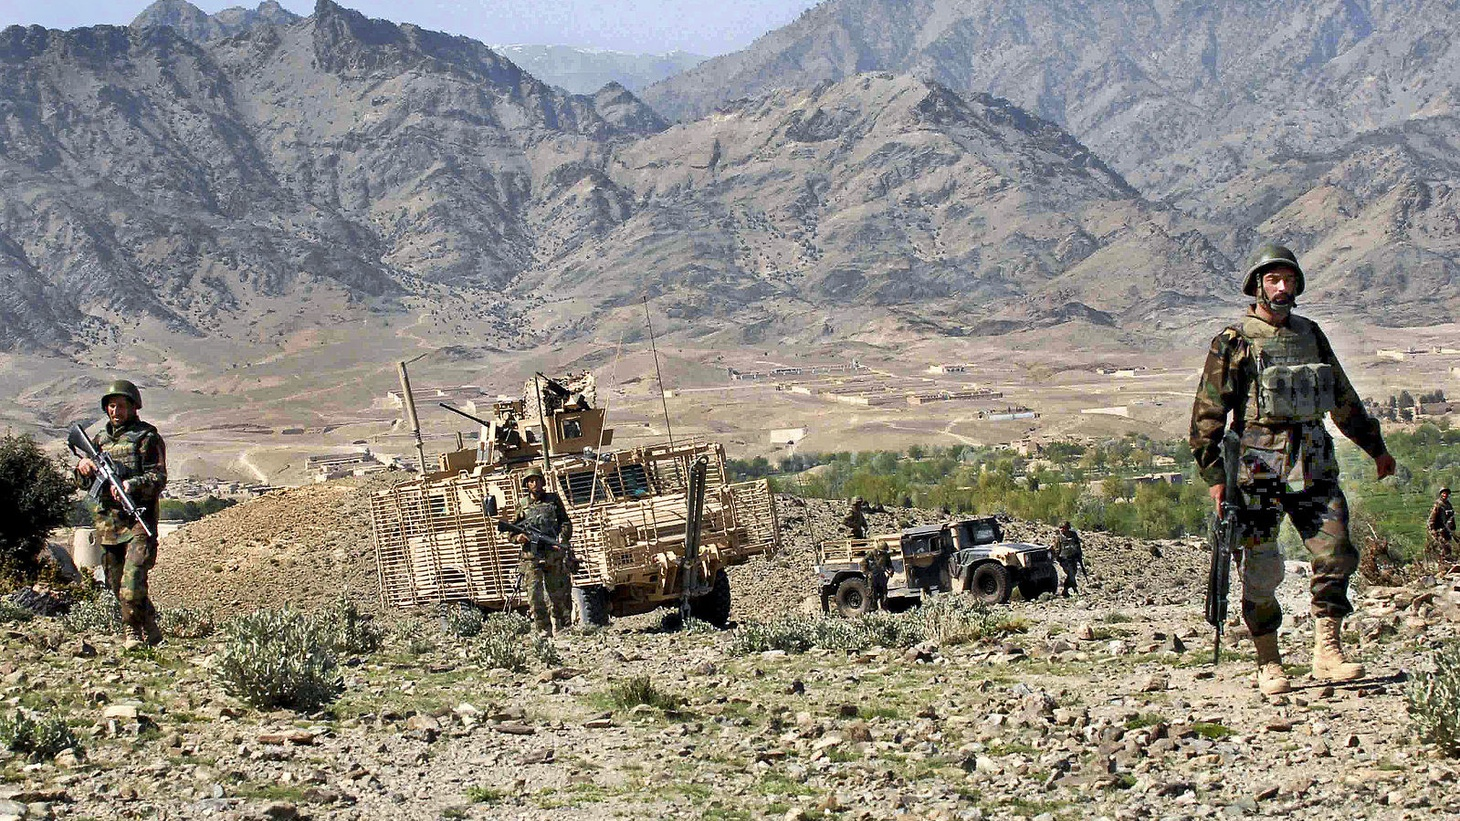 Afghan Army soldiers patrol near the village of Kusheh, Afghanistan, March 24, 2010. The Afghan soldiers have been partnering with U.S. Army Soldiers to help bring stability to part of Khost province. The U.S. Soldiers are assigned to the !st Squadron, 33rd Cavalry Regiment. U.S. Army.